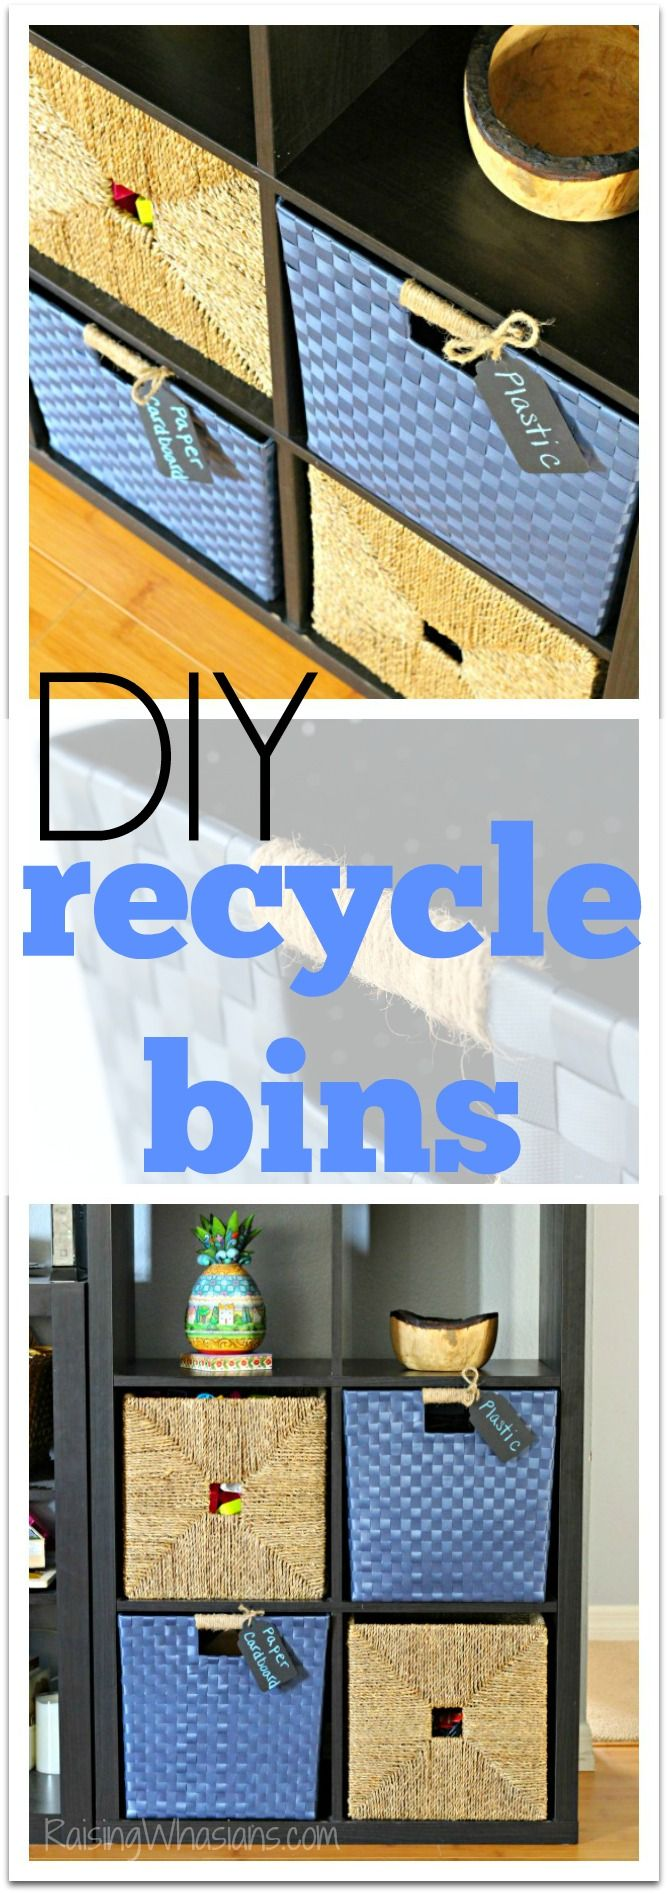 How to Make Recycling Fun for Kids